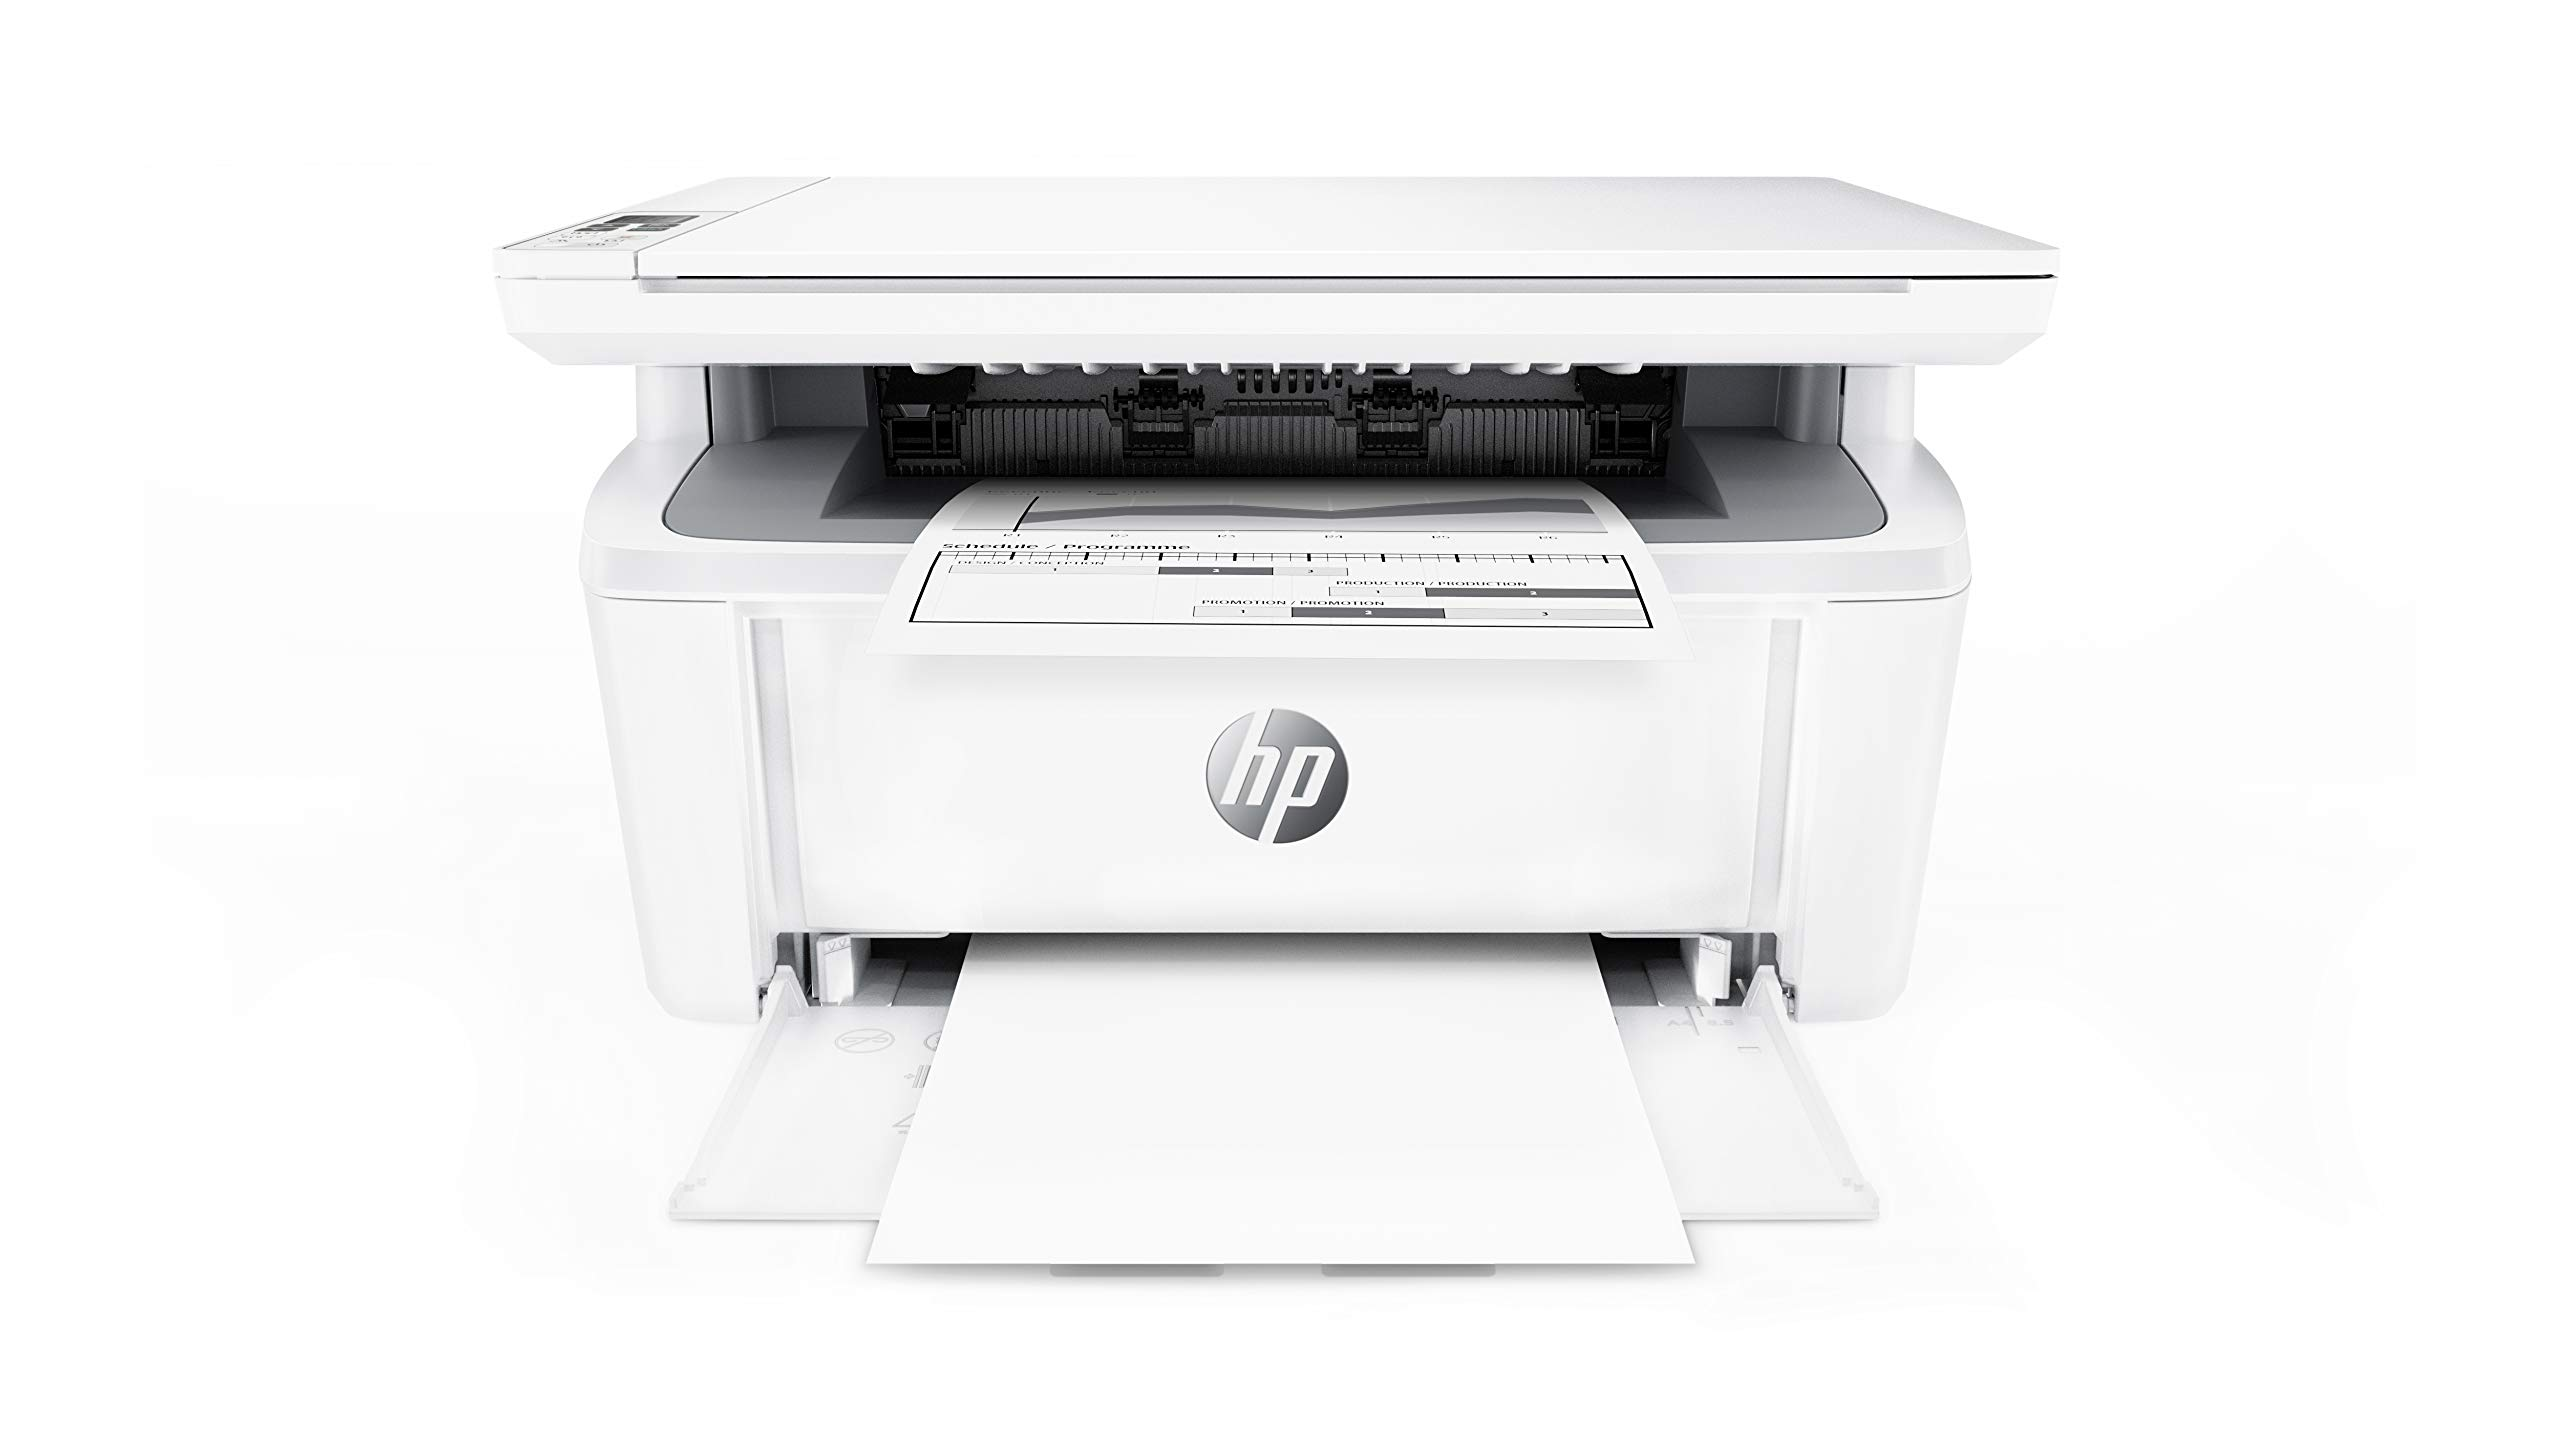 HP Laserjet Pro M31w All-in-One Wireless Monochrome Laser Printer with Mobile Printing (Y5S55A) by HP (Image #1)